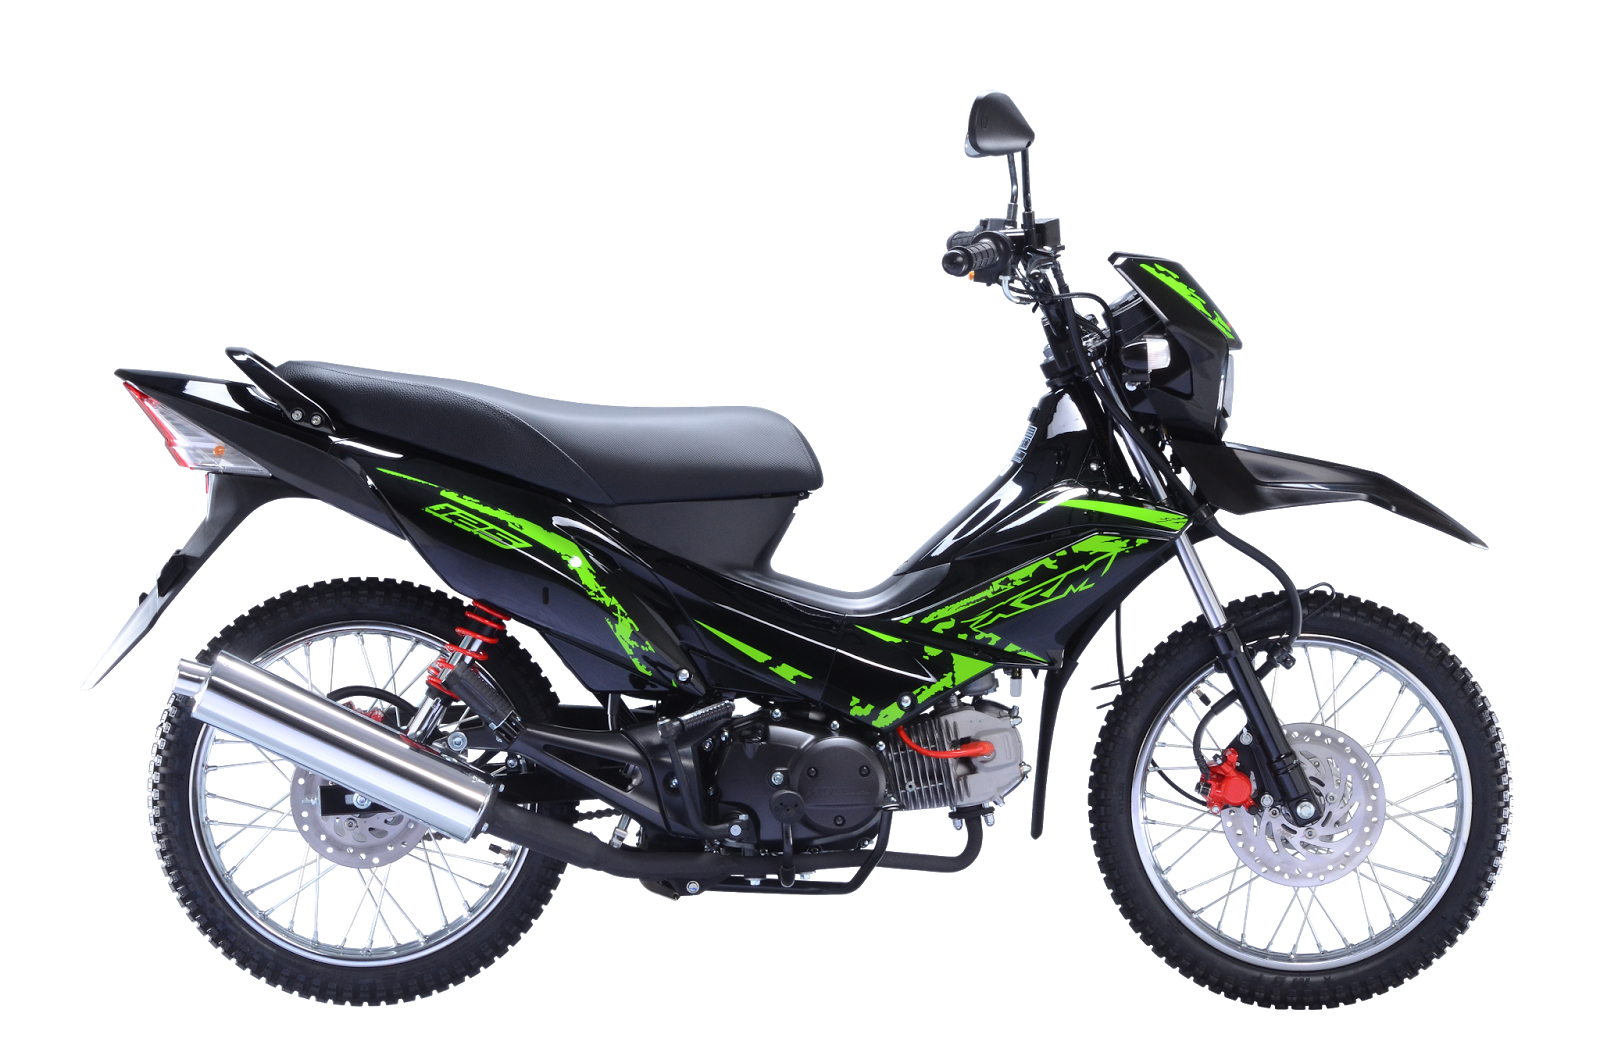 Xrm dsx special edition